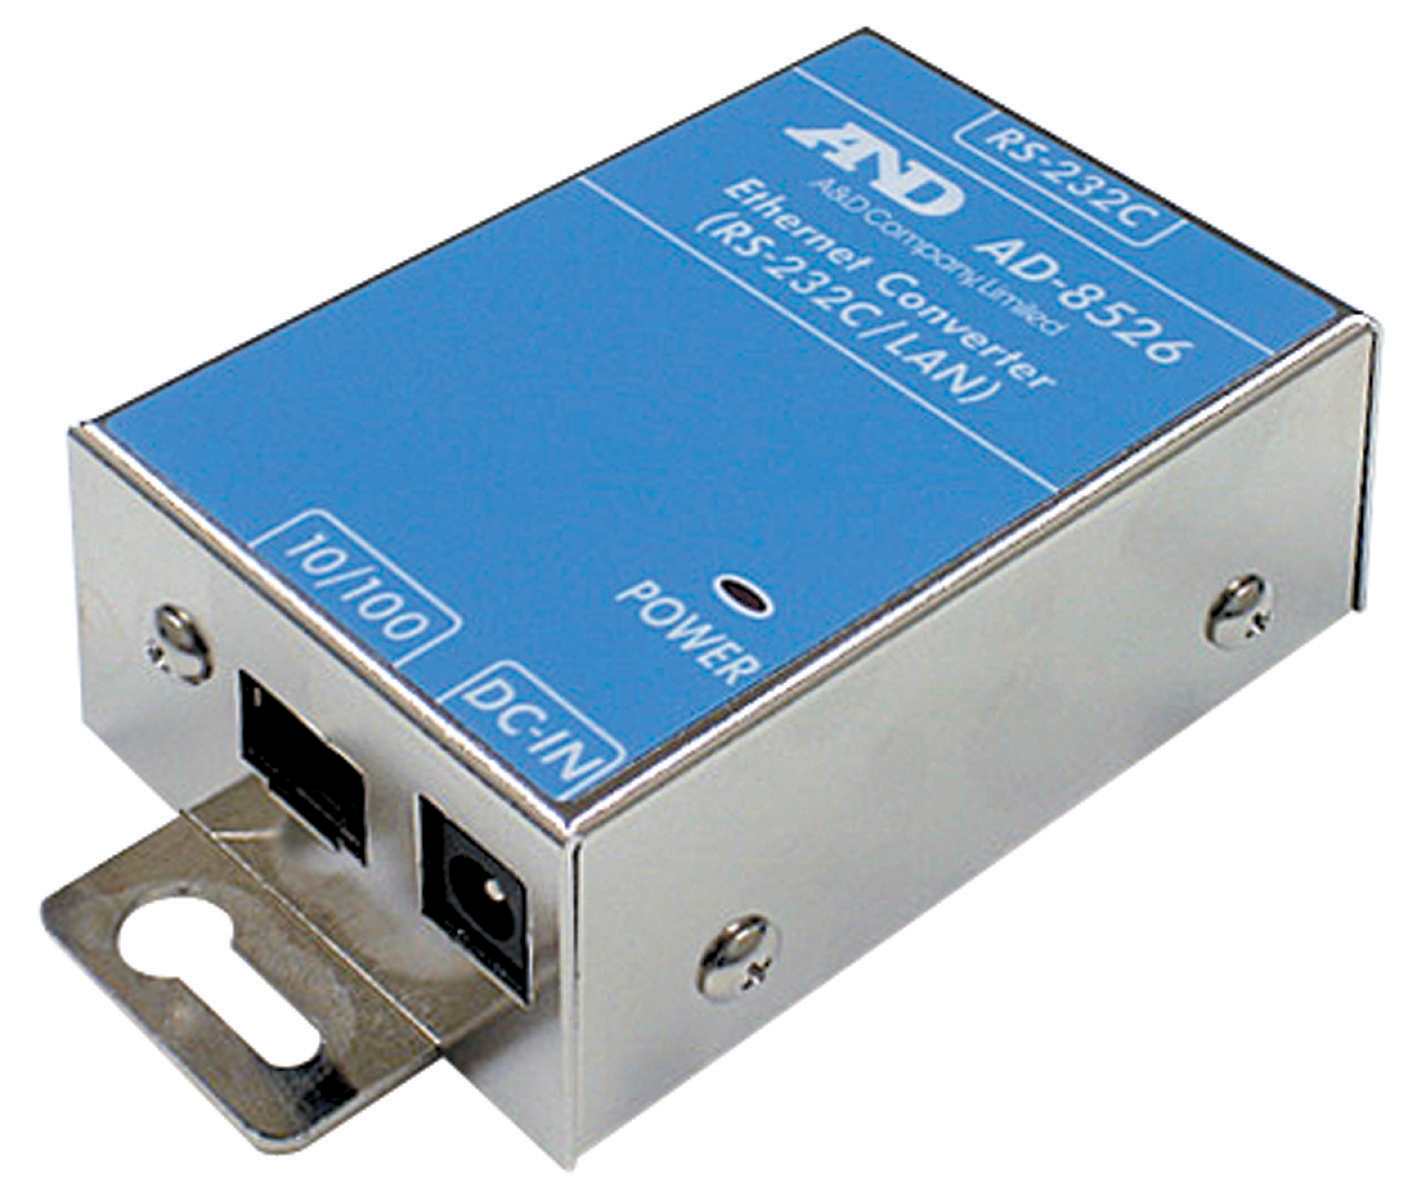 AD-8526 RS232 to Ethernet Convertor